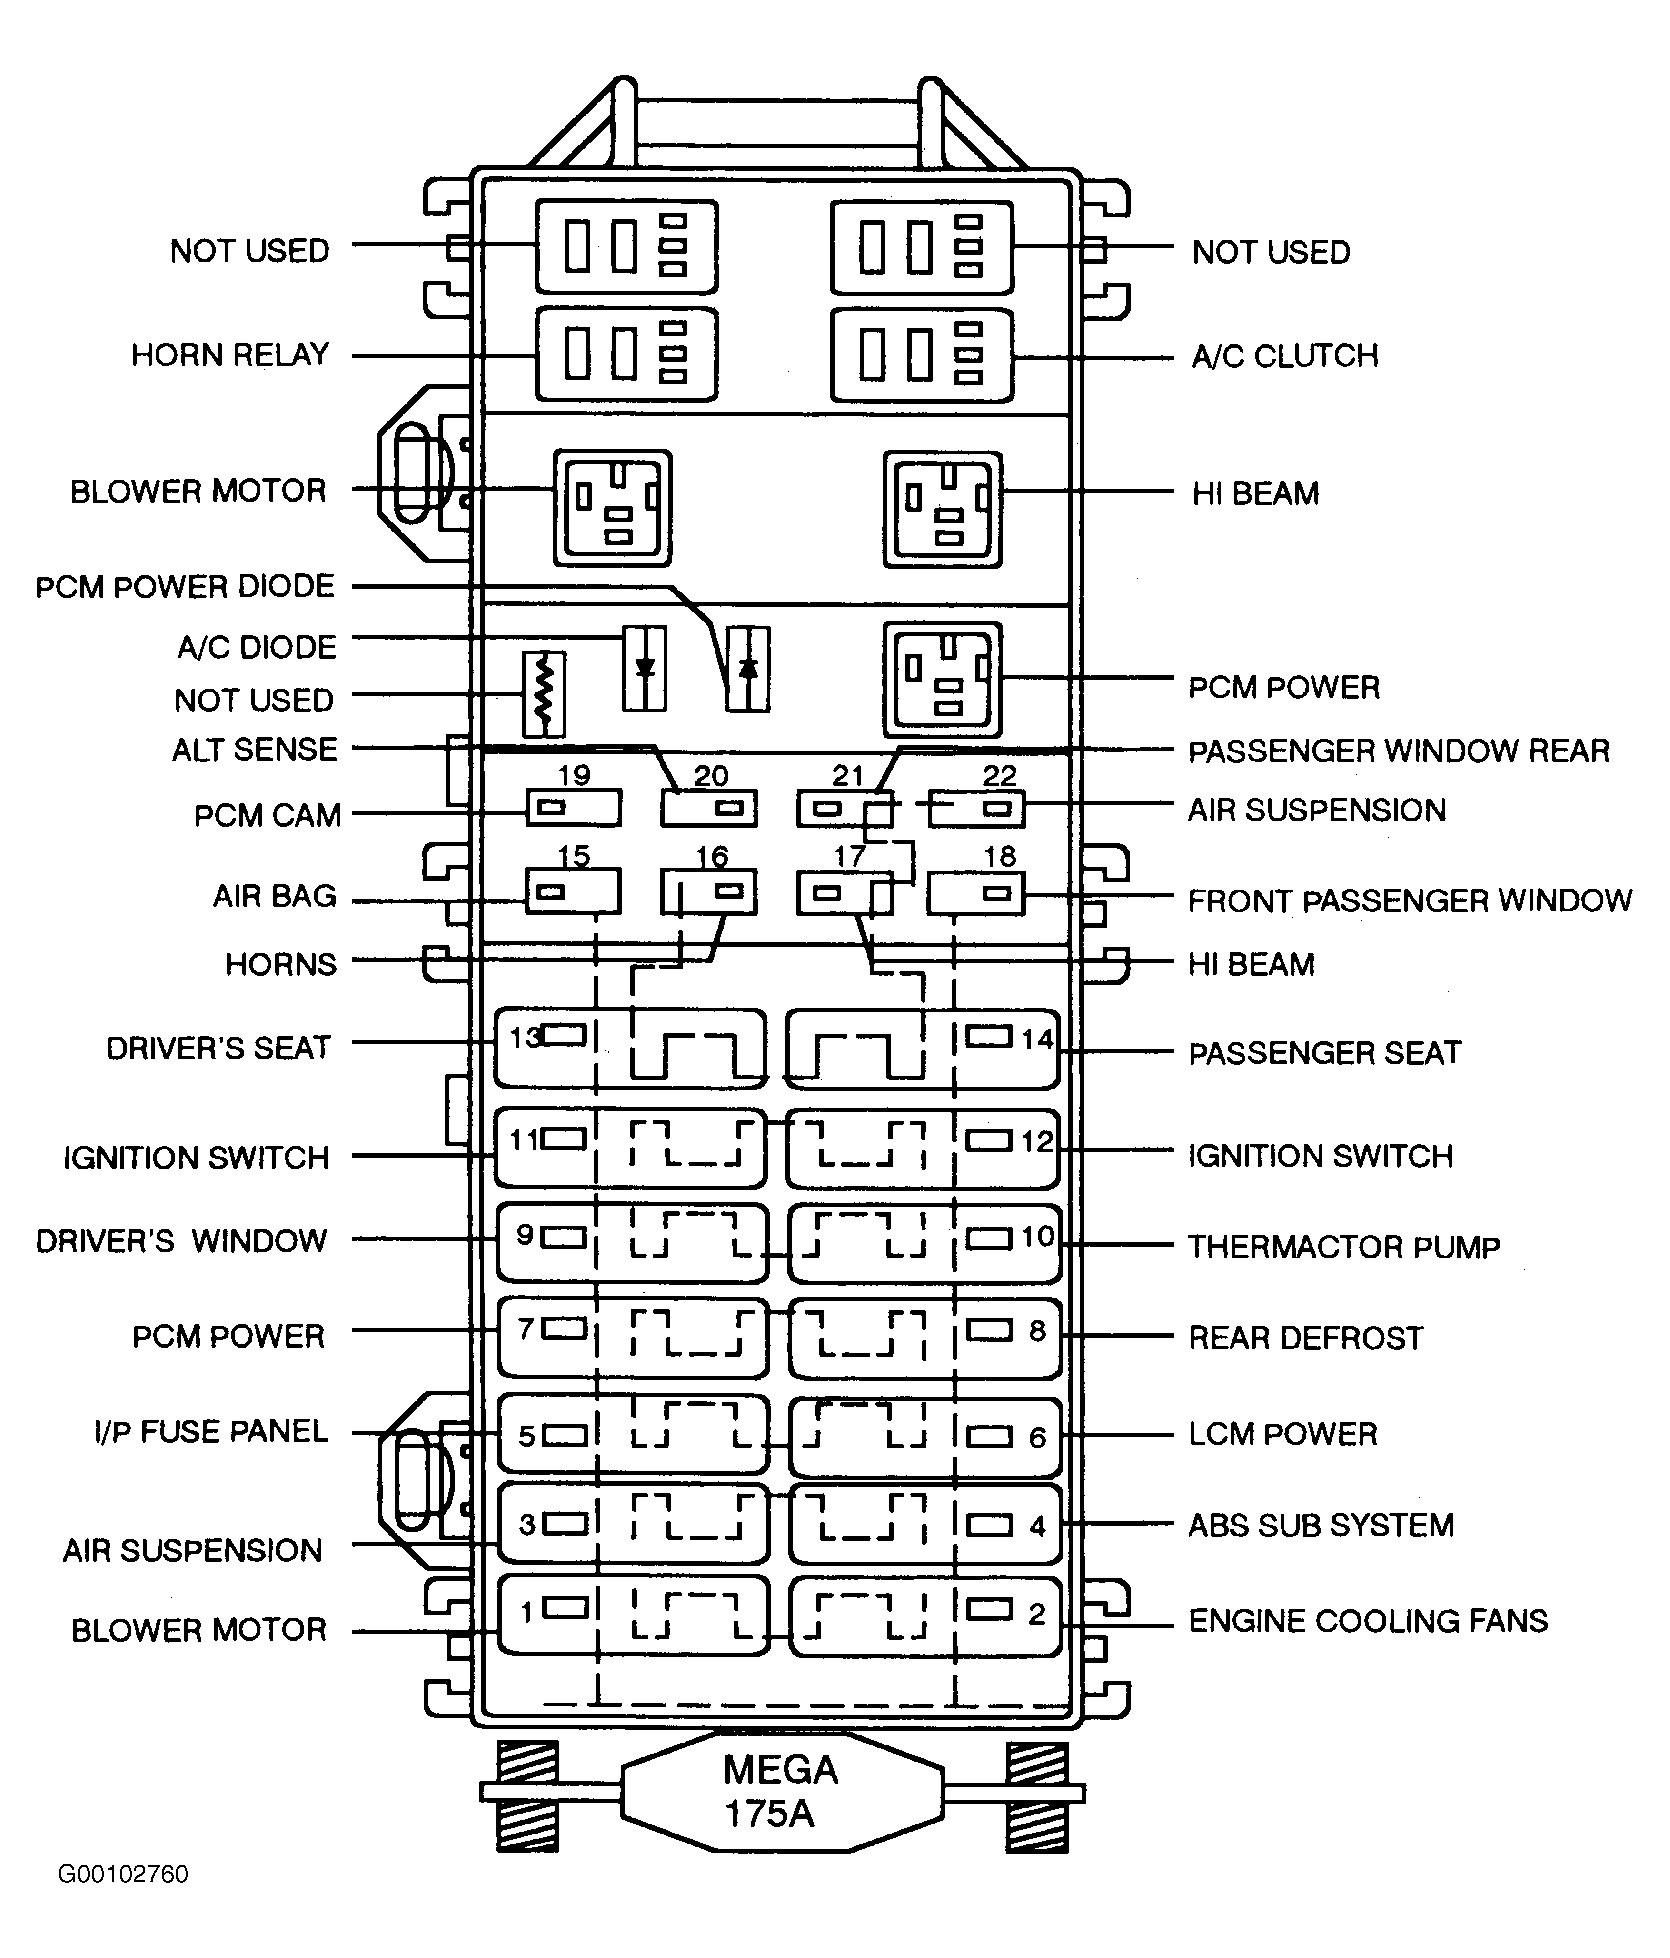 2006 lincoln zephyr fuse box diagram wiring library2006 lincoln zephyr fuse box diagram [ 1670 x 1958 Pixel ]